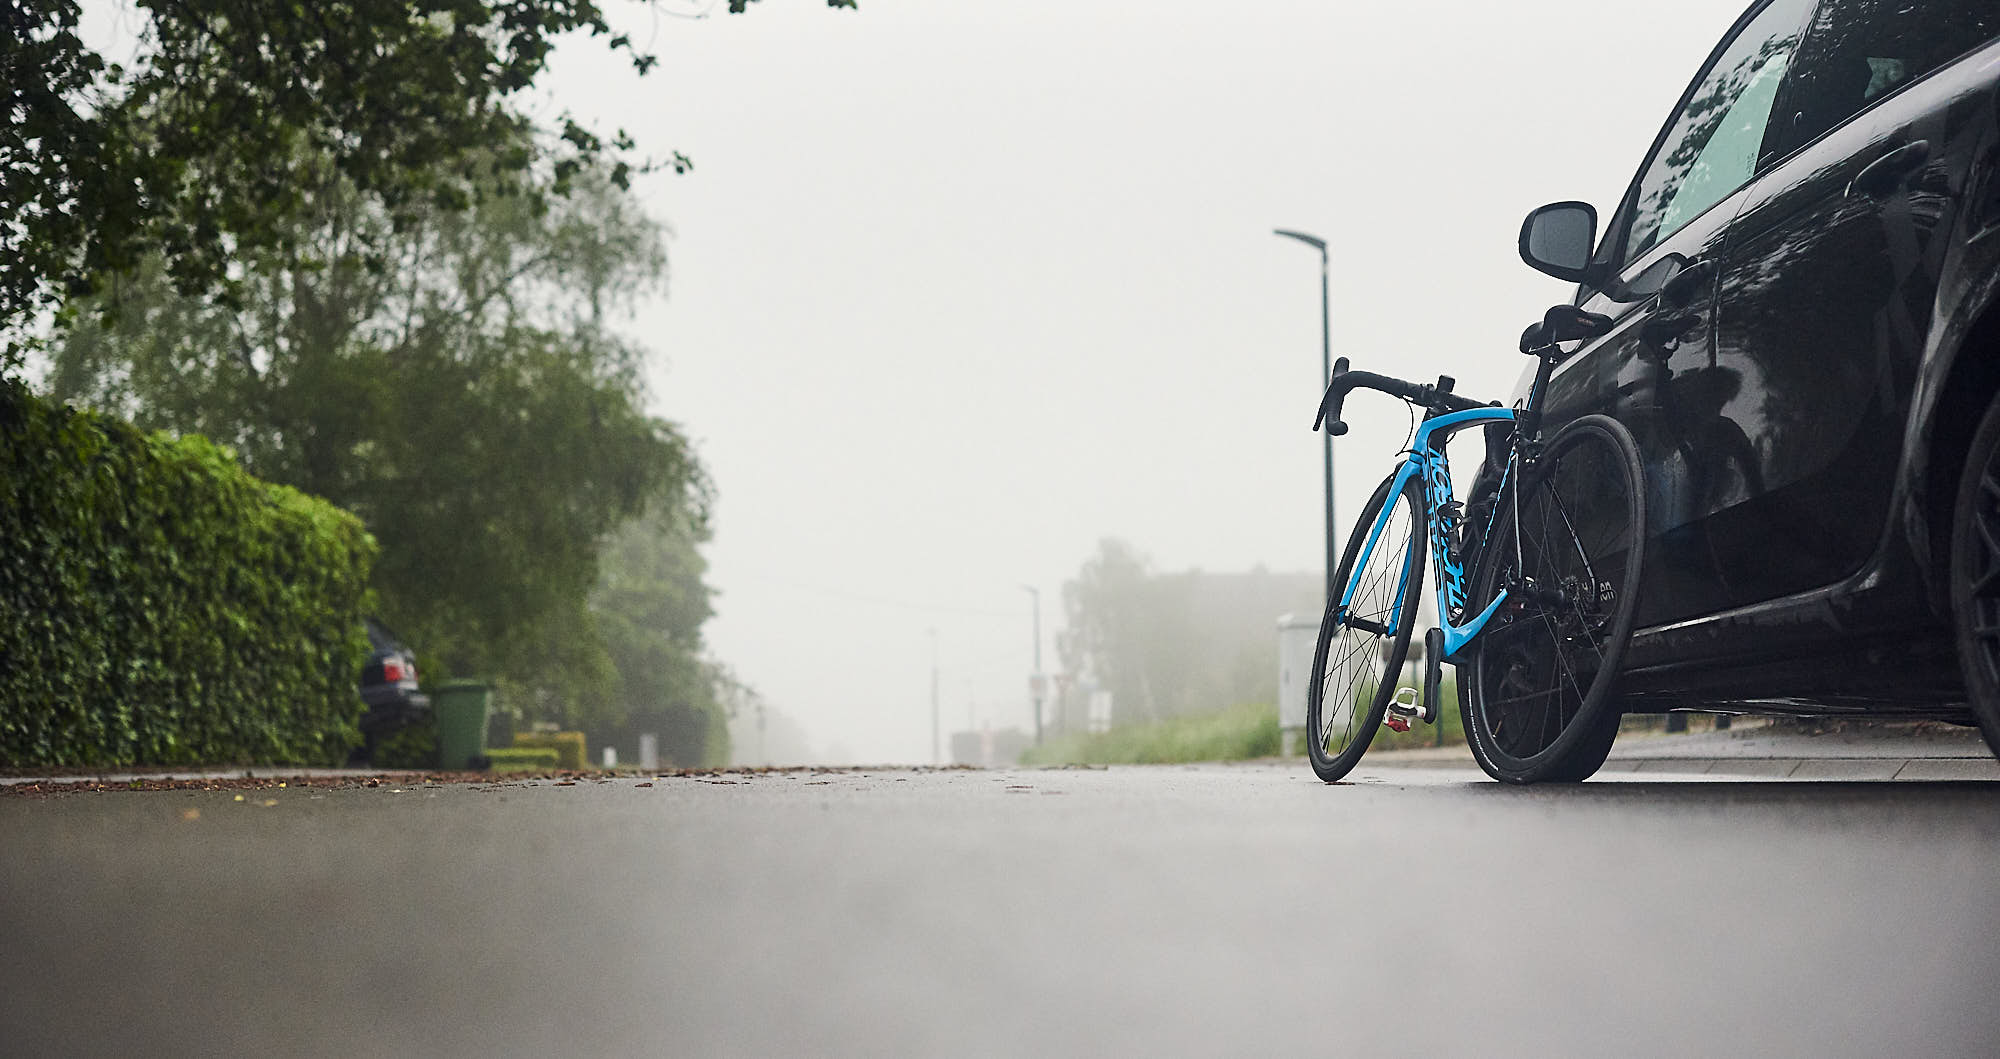 Road racing bike leaning against a car on a foggy morning